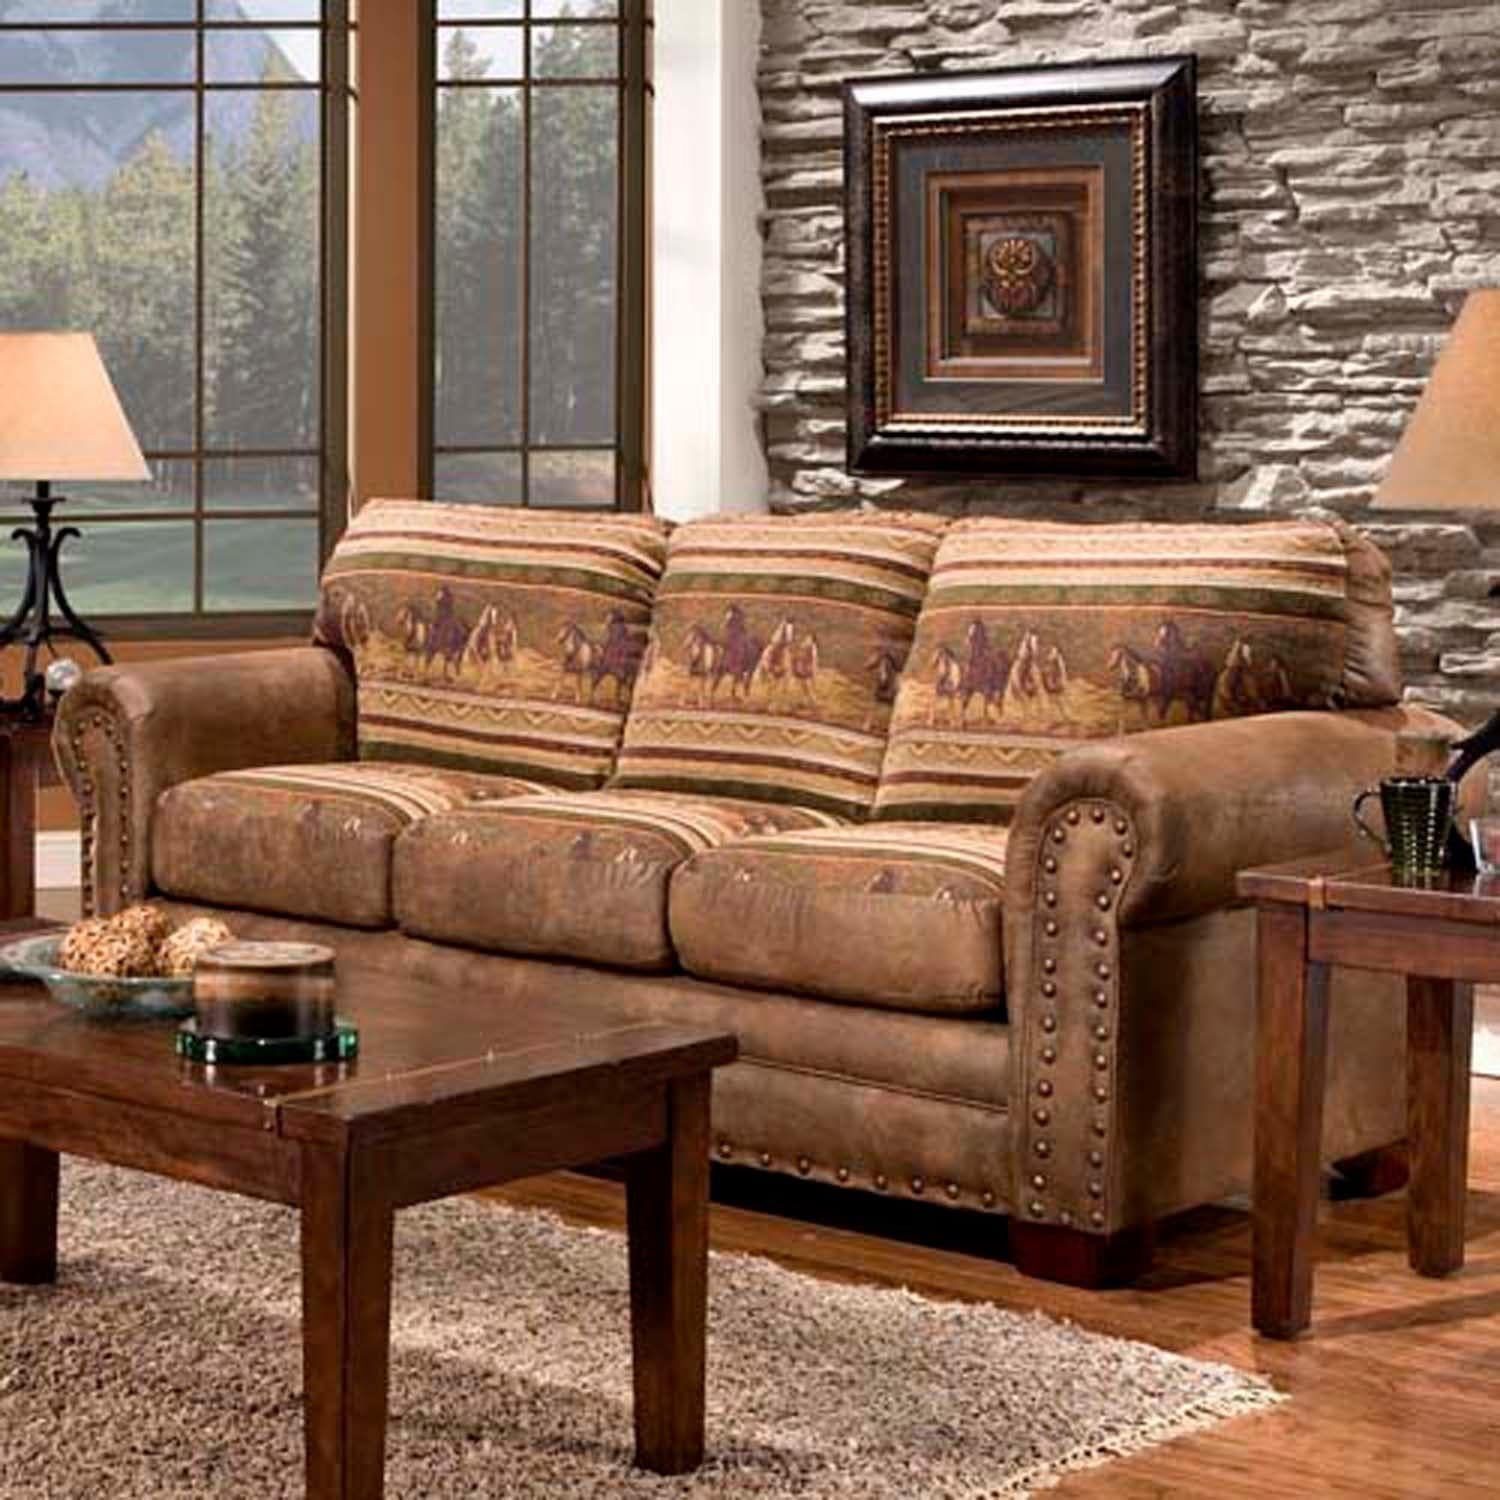 wild horses sofa couch cabin western style lodge rustic faux leather seat plush ebay. Black Bedroom Furniture Sets. Home Design Ideas